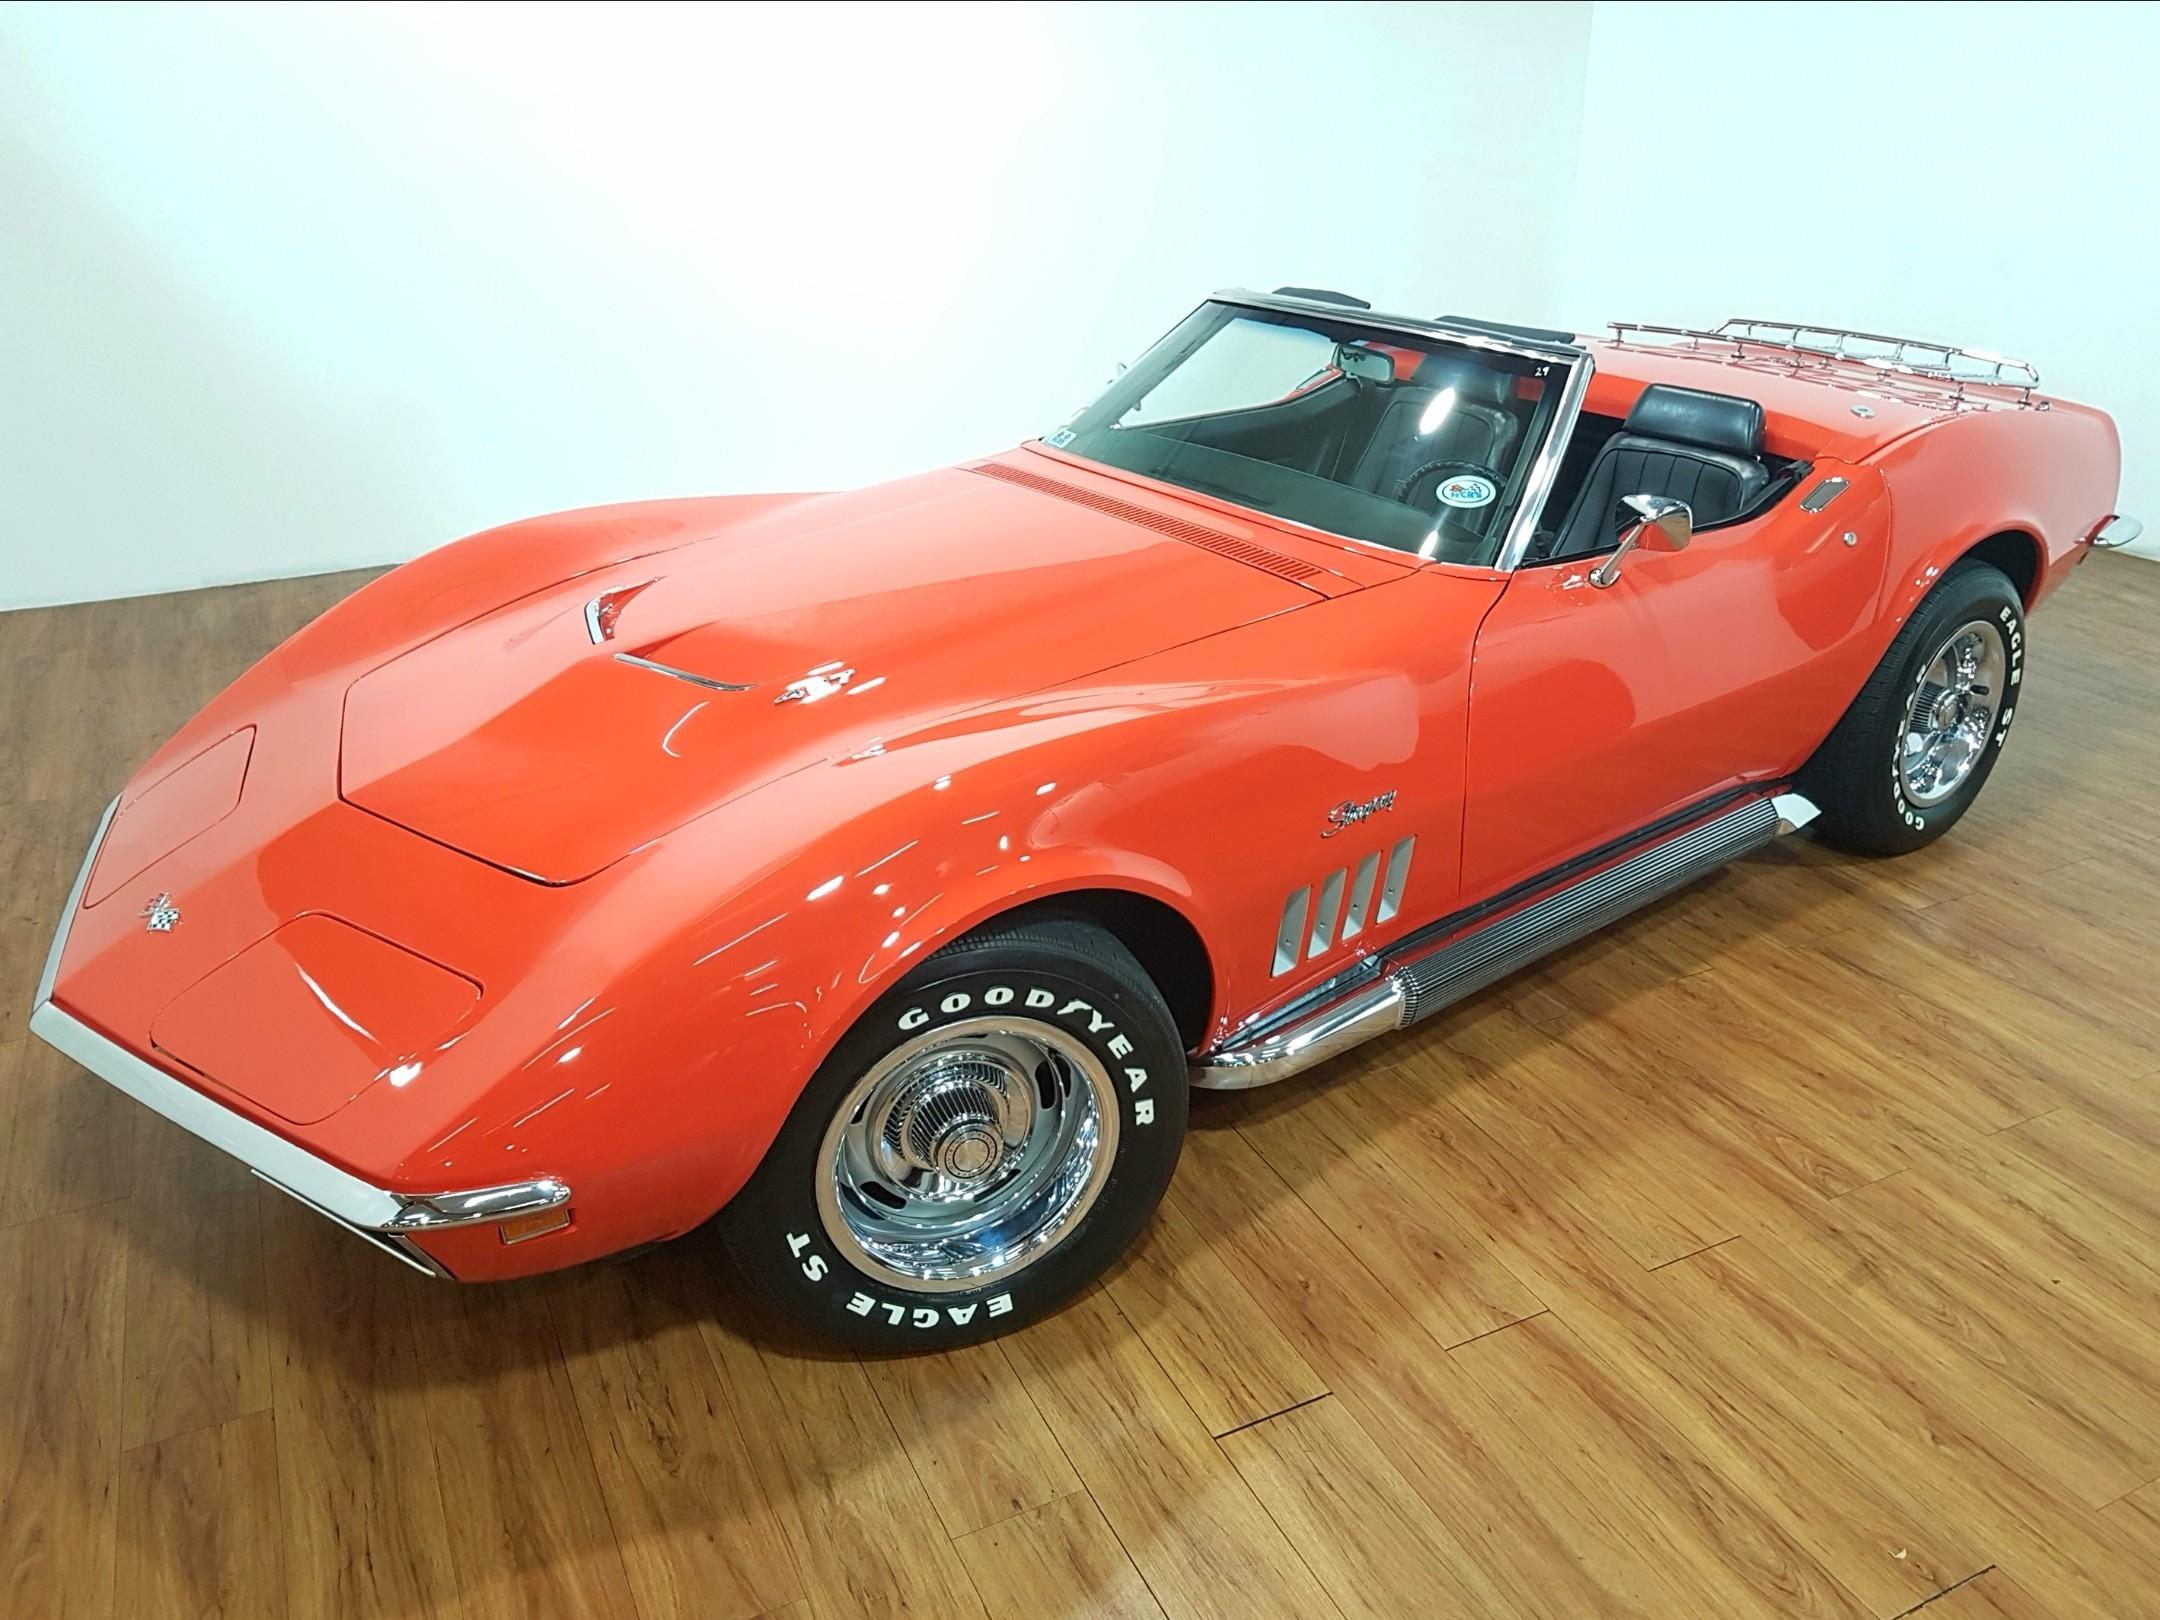 1969 Chevrolet Corvette 427 435hp L71 Convertible